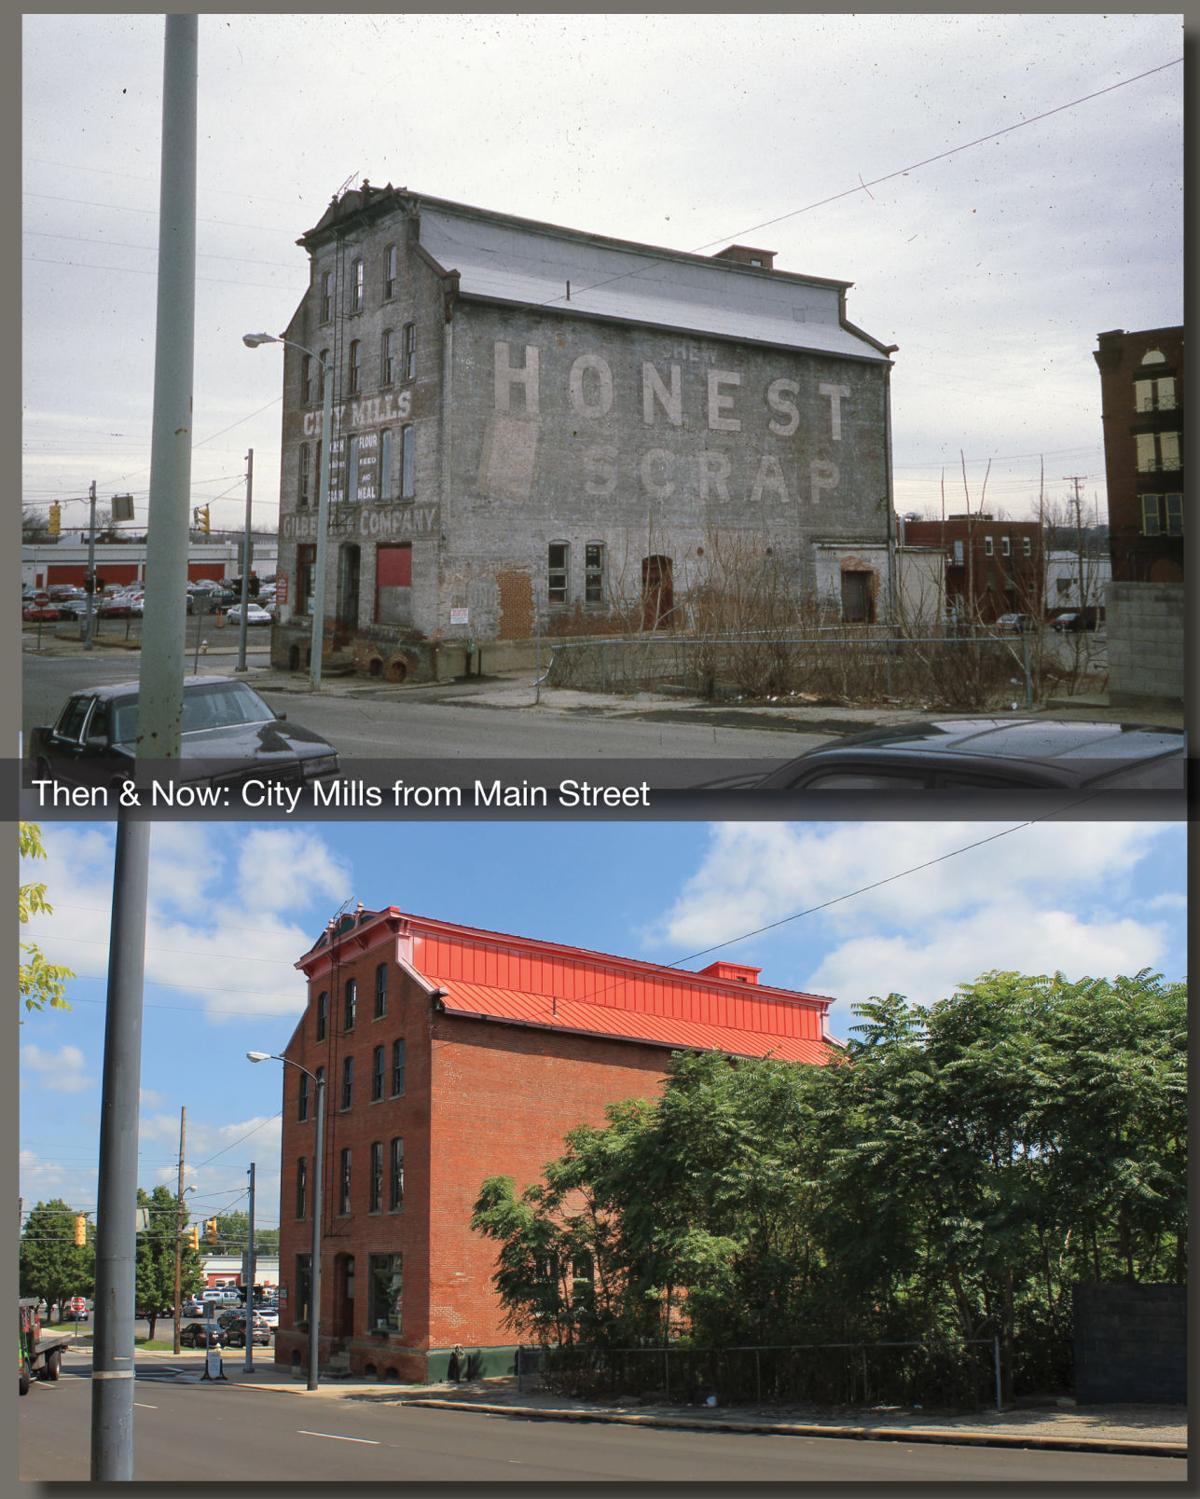 Then & Now: City Mills from Main Street